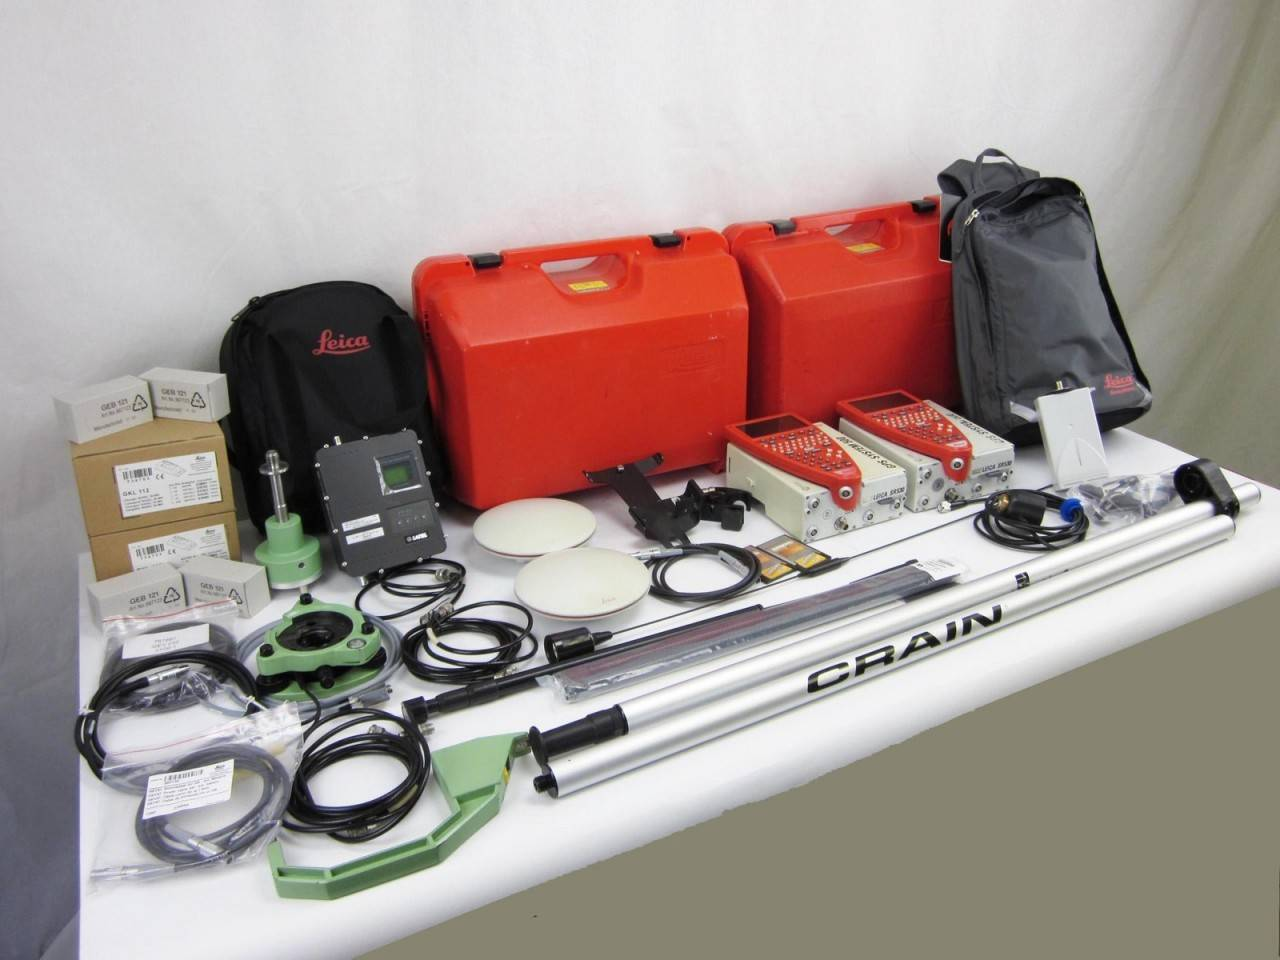 Used Leica SR530 Dual Frequency L1/L2 Base & Rover RTK Survey